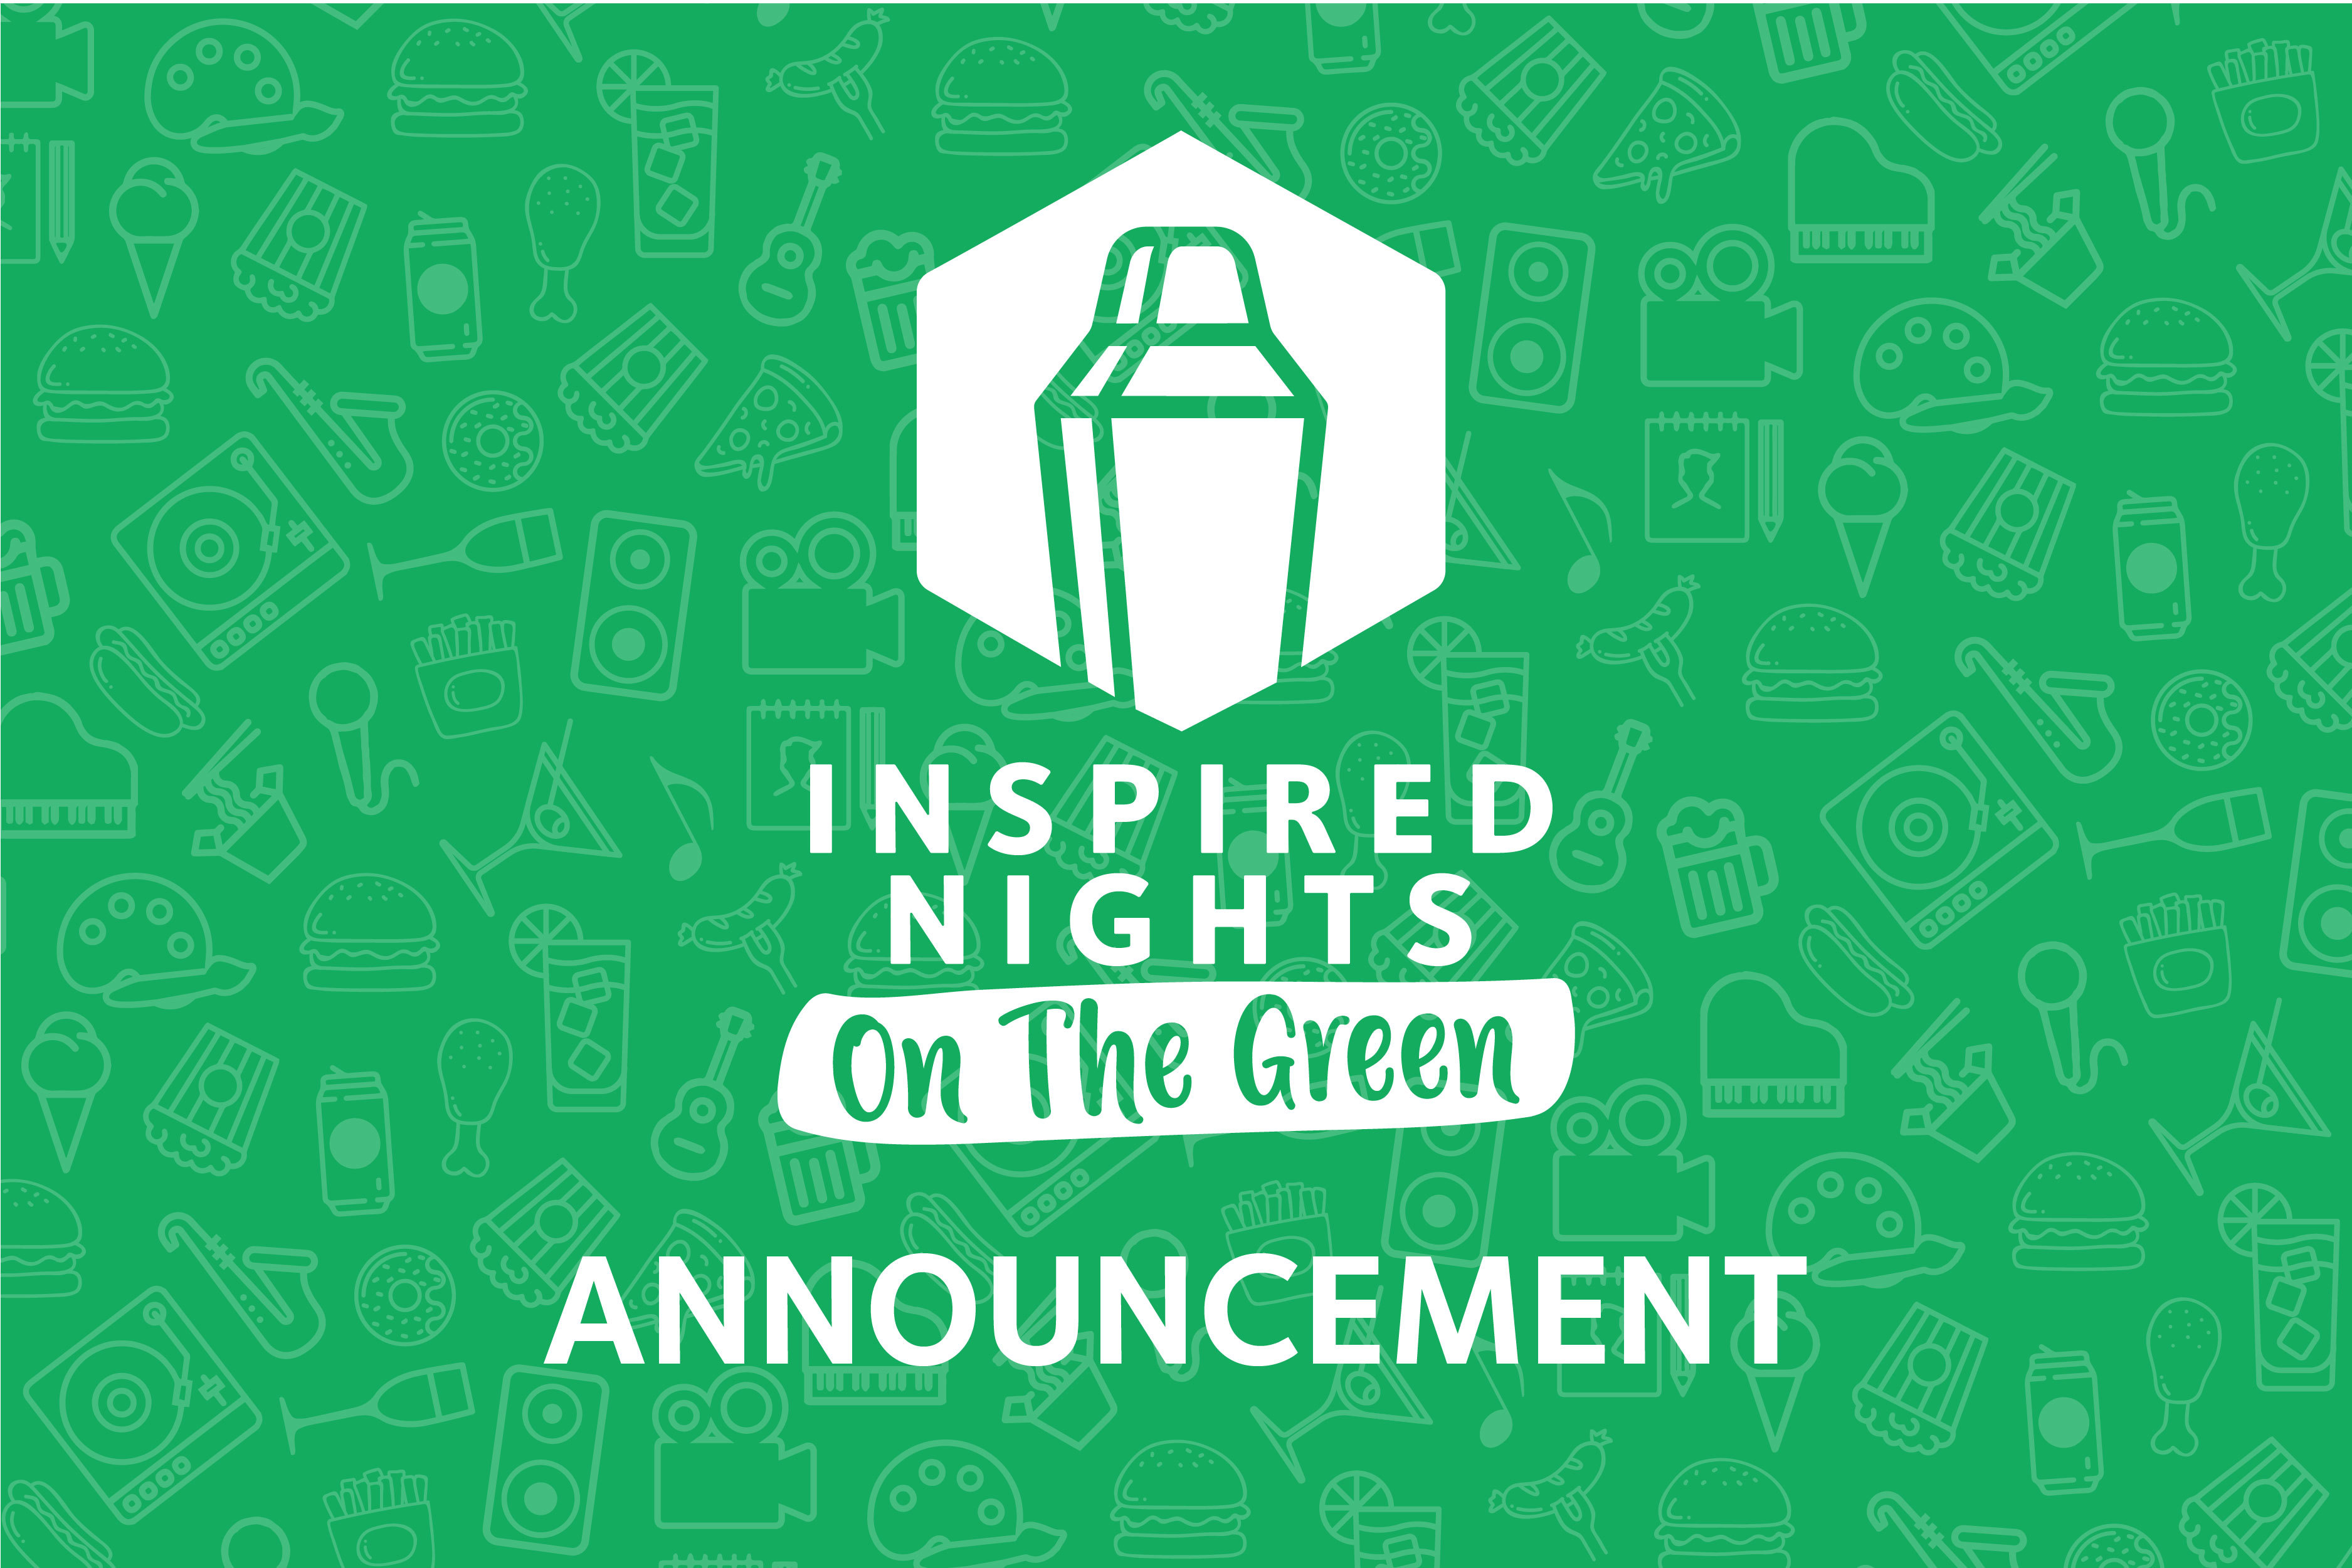 Inspired Nights on The Green Announcement